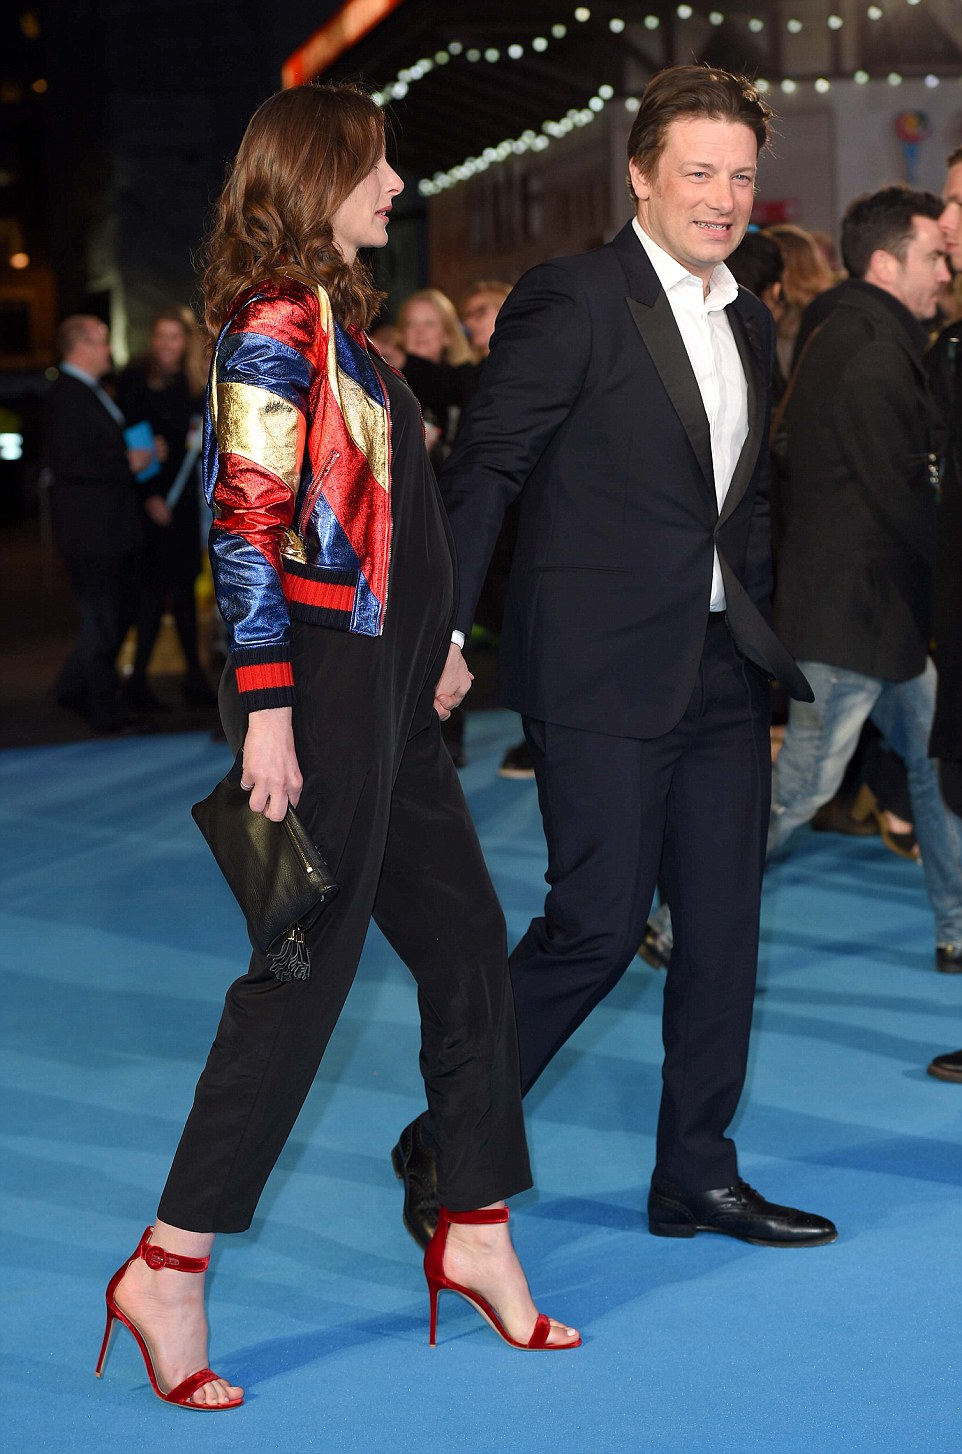 Jools and Jame Oliver attends the European Premiere of 'Eddie the Eagle' at Odeon Leicester Square, London, UK. 17/03/2016 Credit Photo ©Karwai Tang For more information, please contact: Karwai Tang 07950 192531 karwai@karwaitang.com